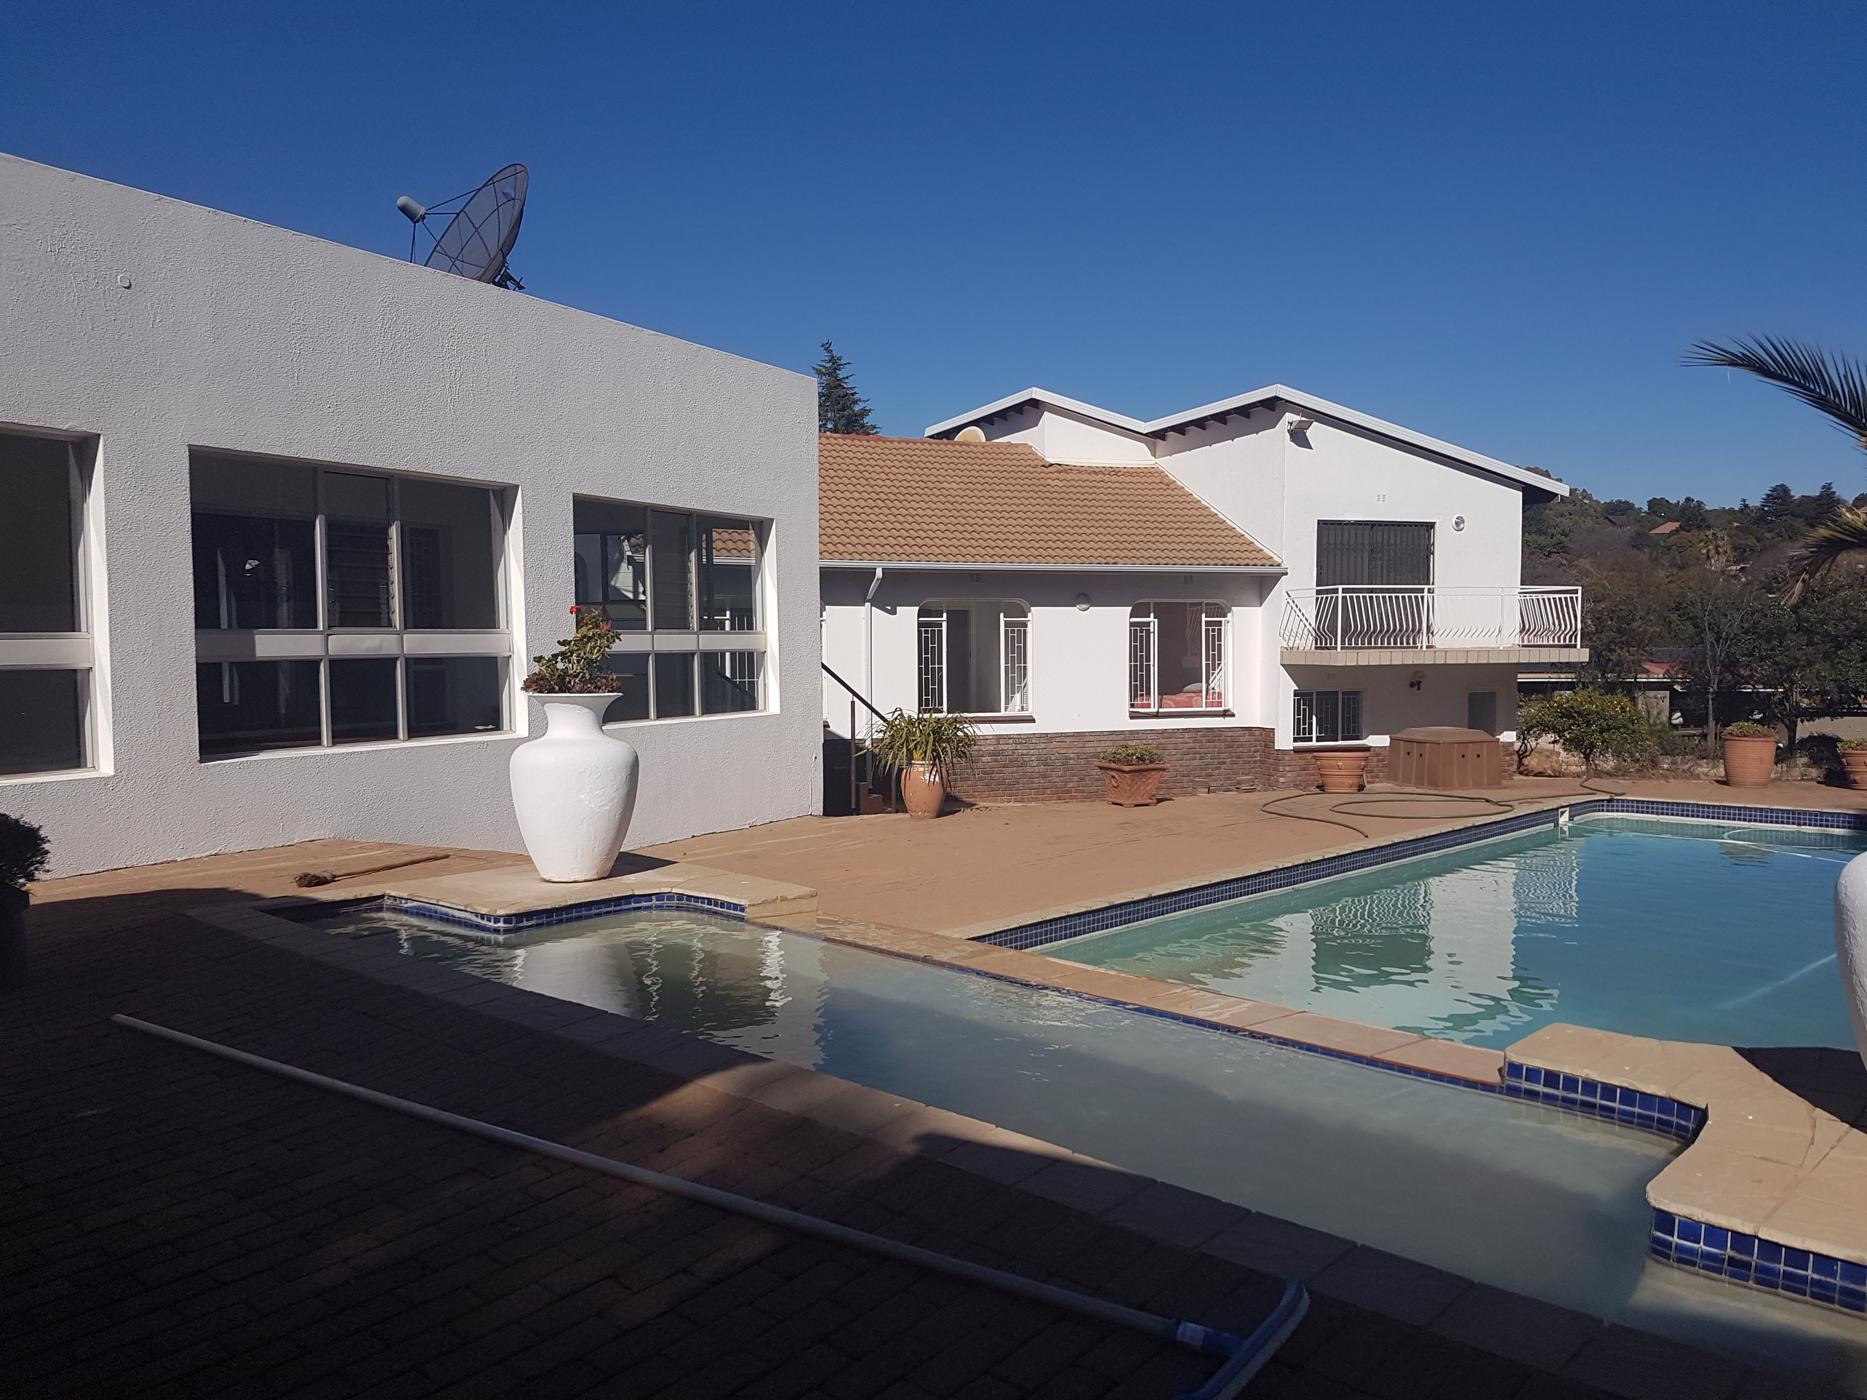 https://listing.pamgolding.co.za/images/properties/201907/1020178/H/1020178_H_1.jpg